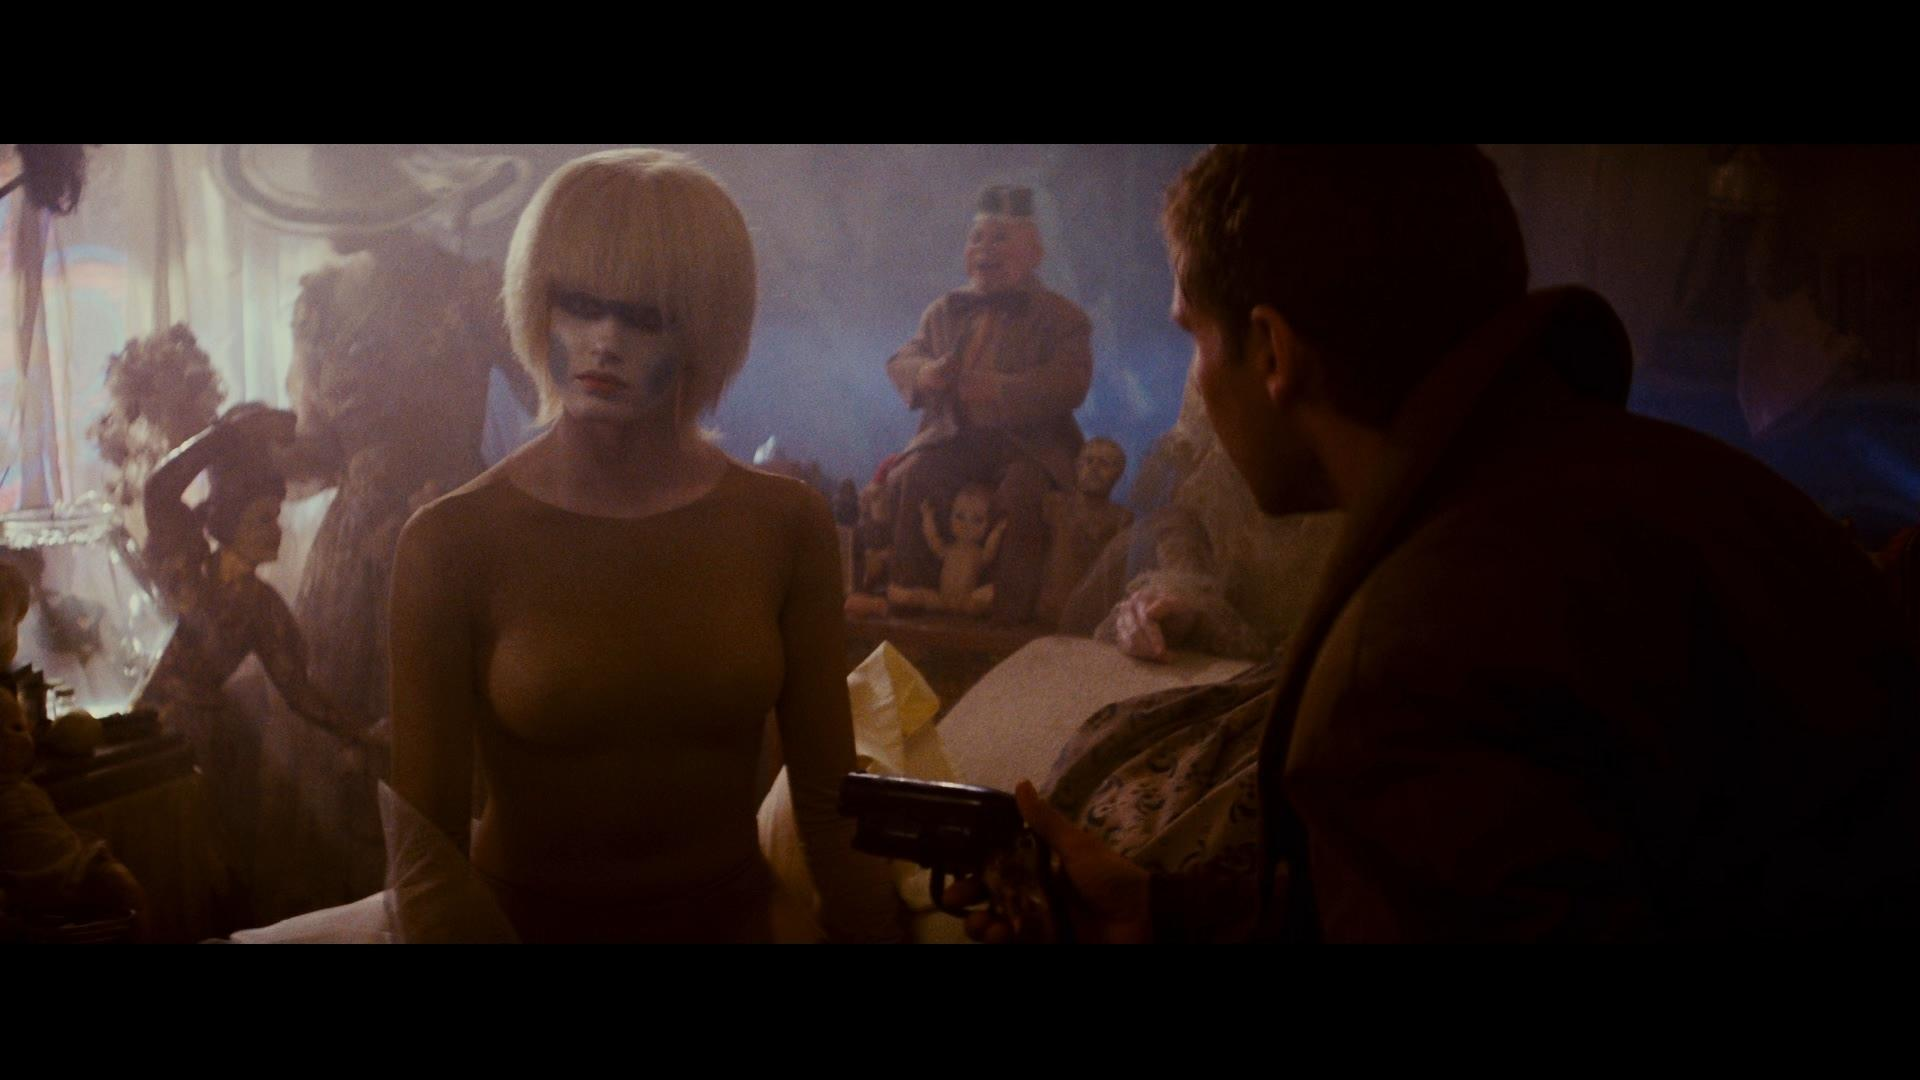 Blade Runner Pics And Porn Images